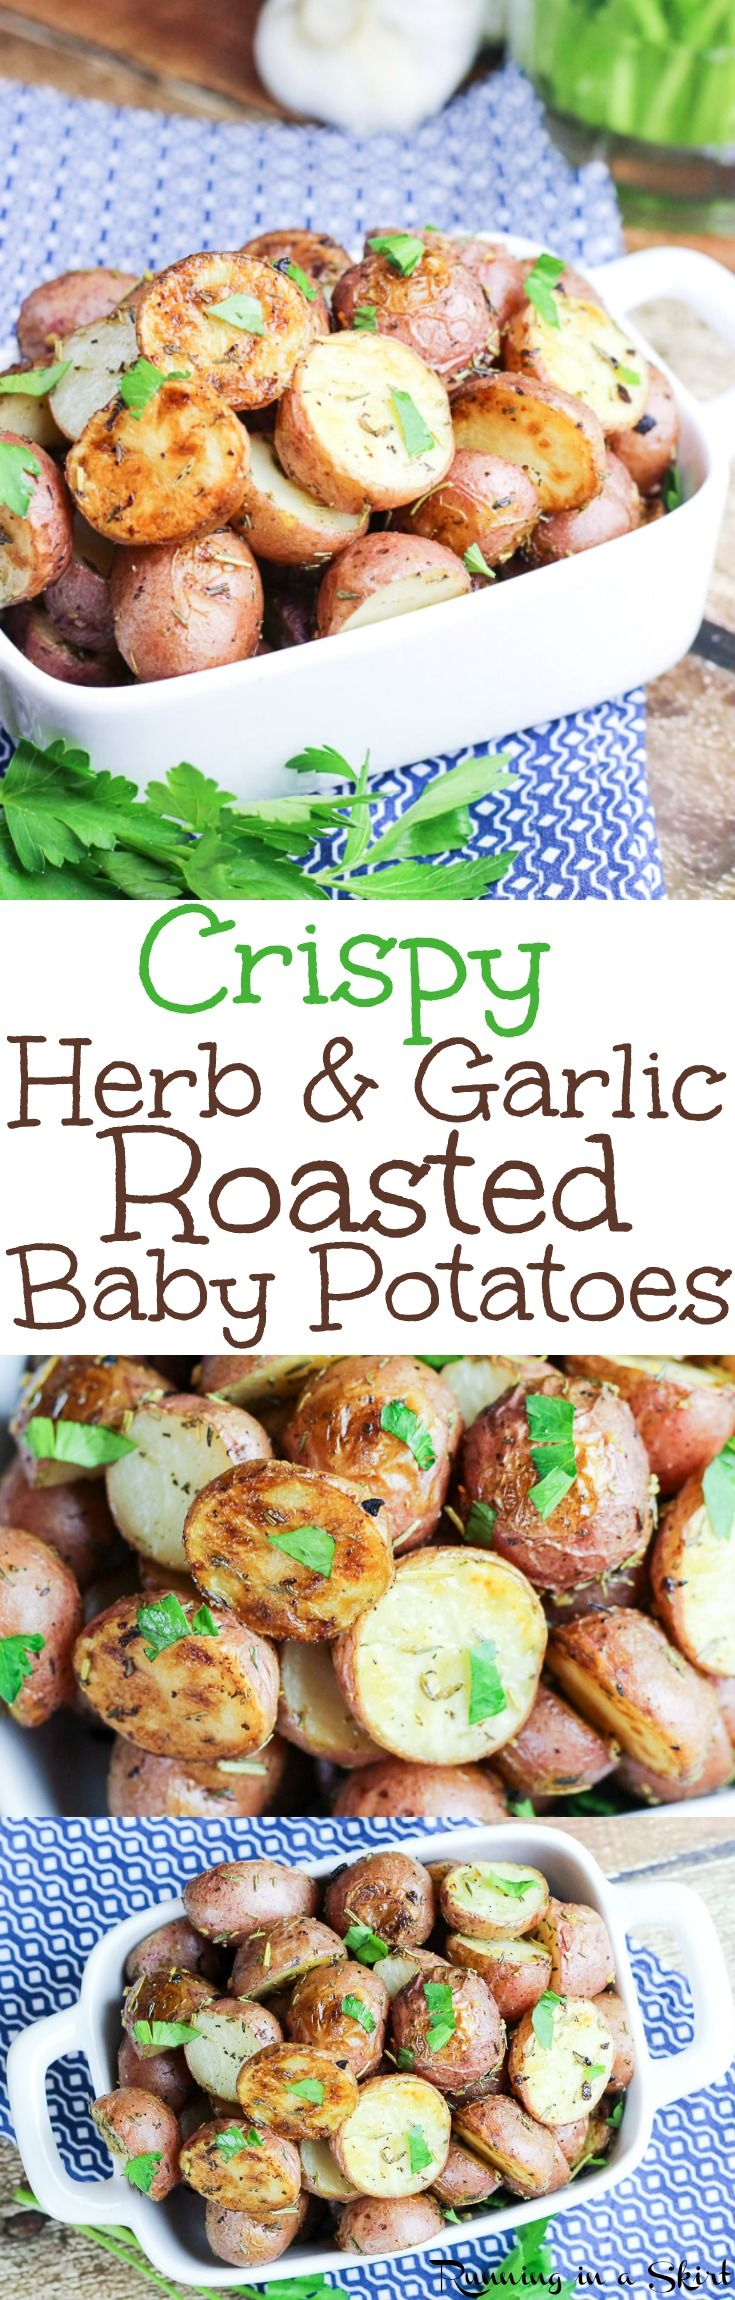 Crispy Oven Roasted Potatoes recipe - an easy and healthy recipe for baby red potatoes tossed in olive oil, garlic and herbs (rosemary and thyme.)  Great for dinner or for a crowd!  Roasted at 450!  Vegan, Vegetarian / Running in a Skirt